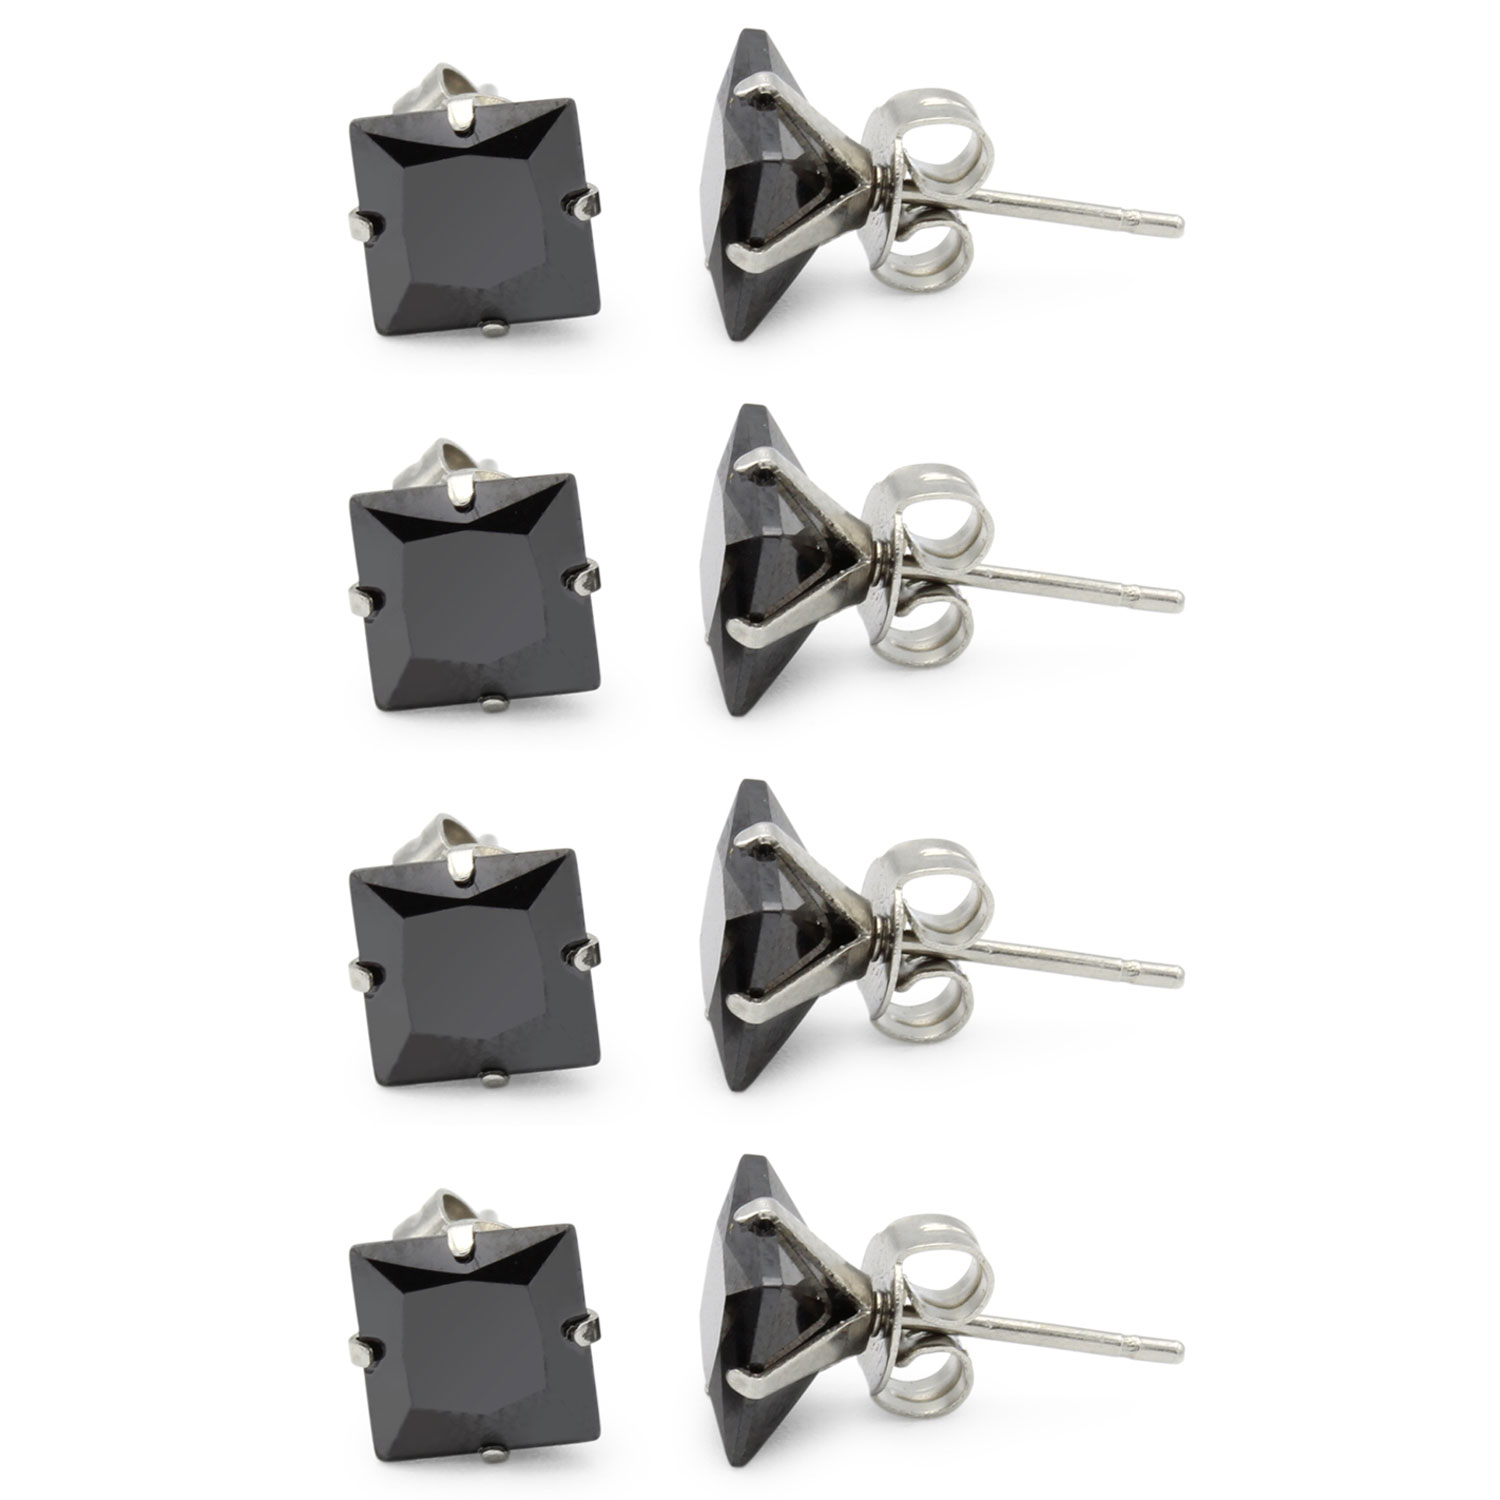 43af524b9b7b8 Black Cubic Zirconia Unisex Stud Earrings Stainless Steel Jewelry  Collection Square Studs 3-10 mm 4 Pack Set